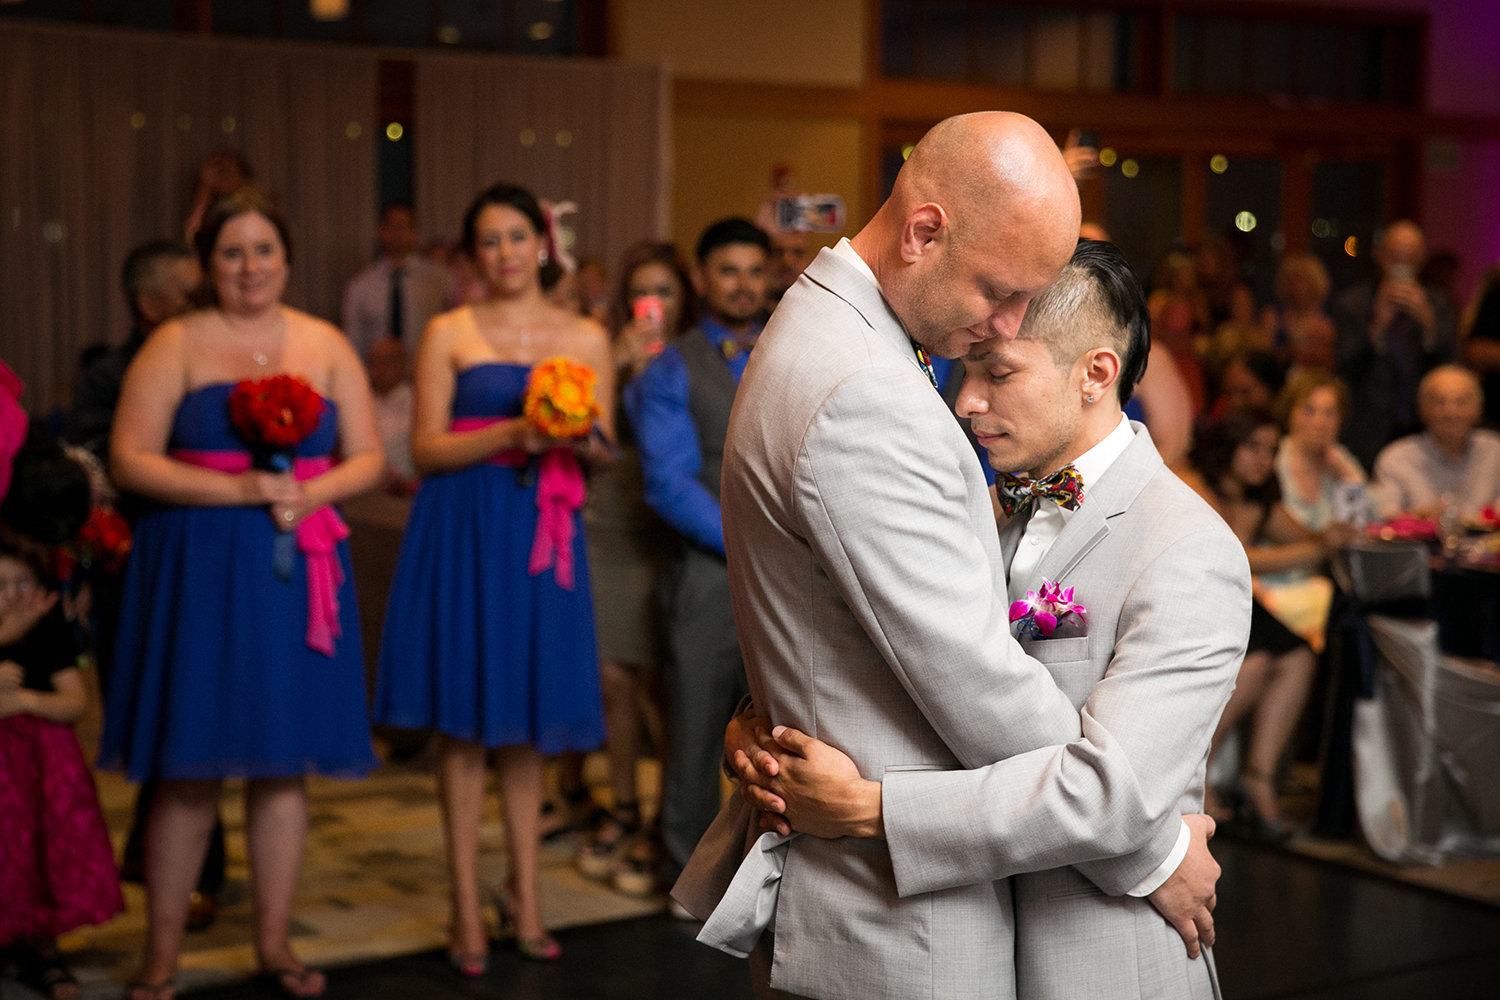 First Dance as Husbands | LGBT Wedding Reception